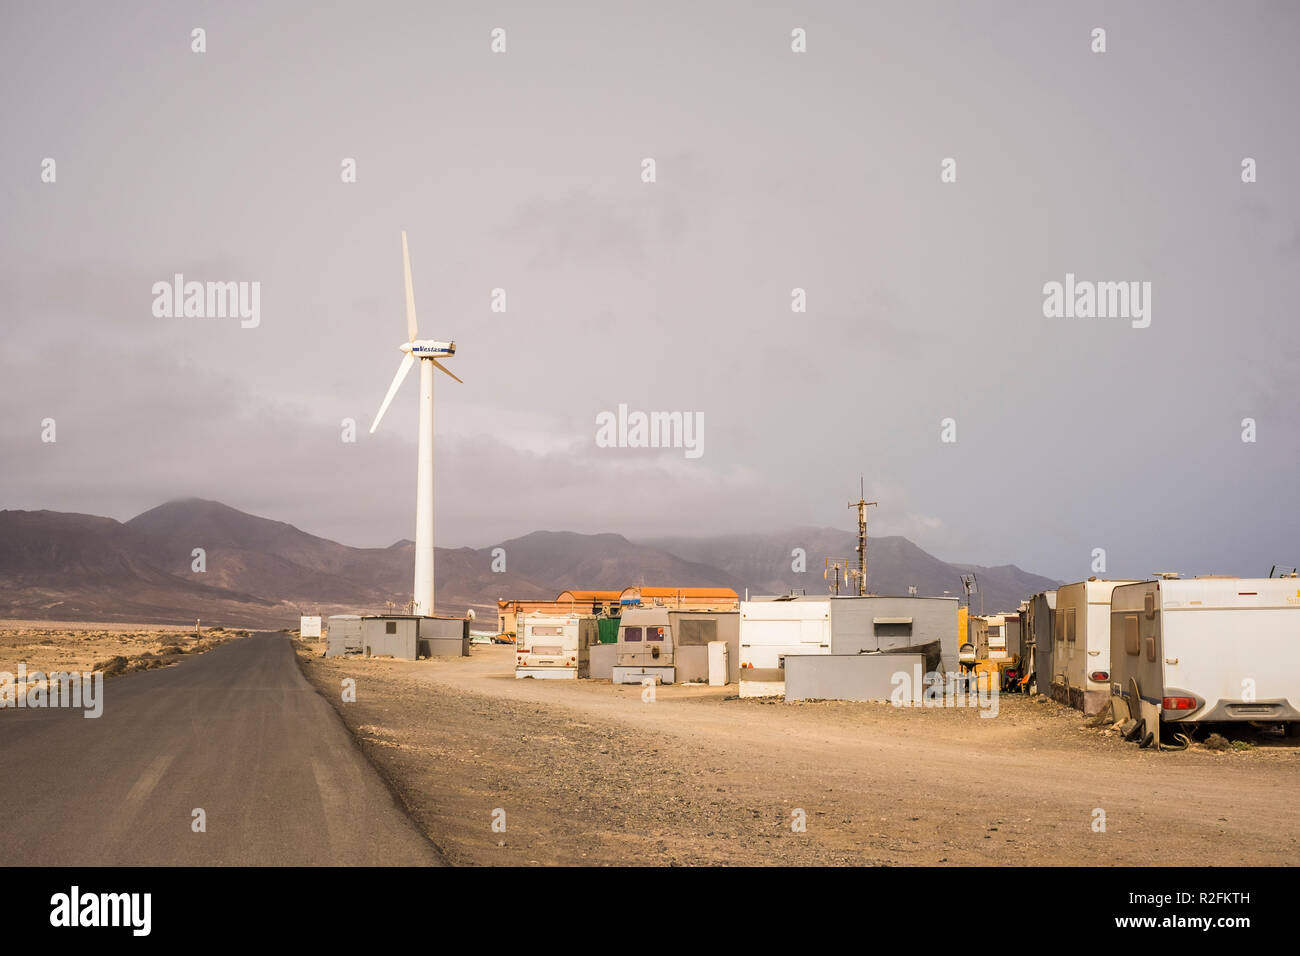 independent little town with houses and caravan hippy and out of siciety lifestyle. one road to come and go and one windmil to produce the energy they need to live there or survive. no comfort zone, out of the box life Stock Photo